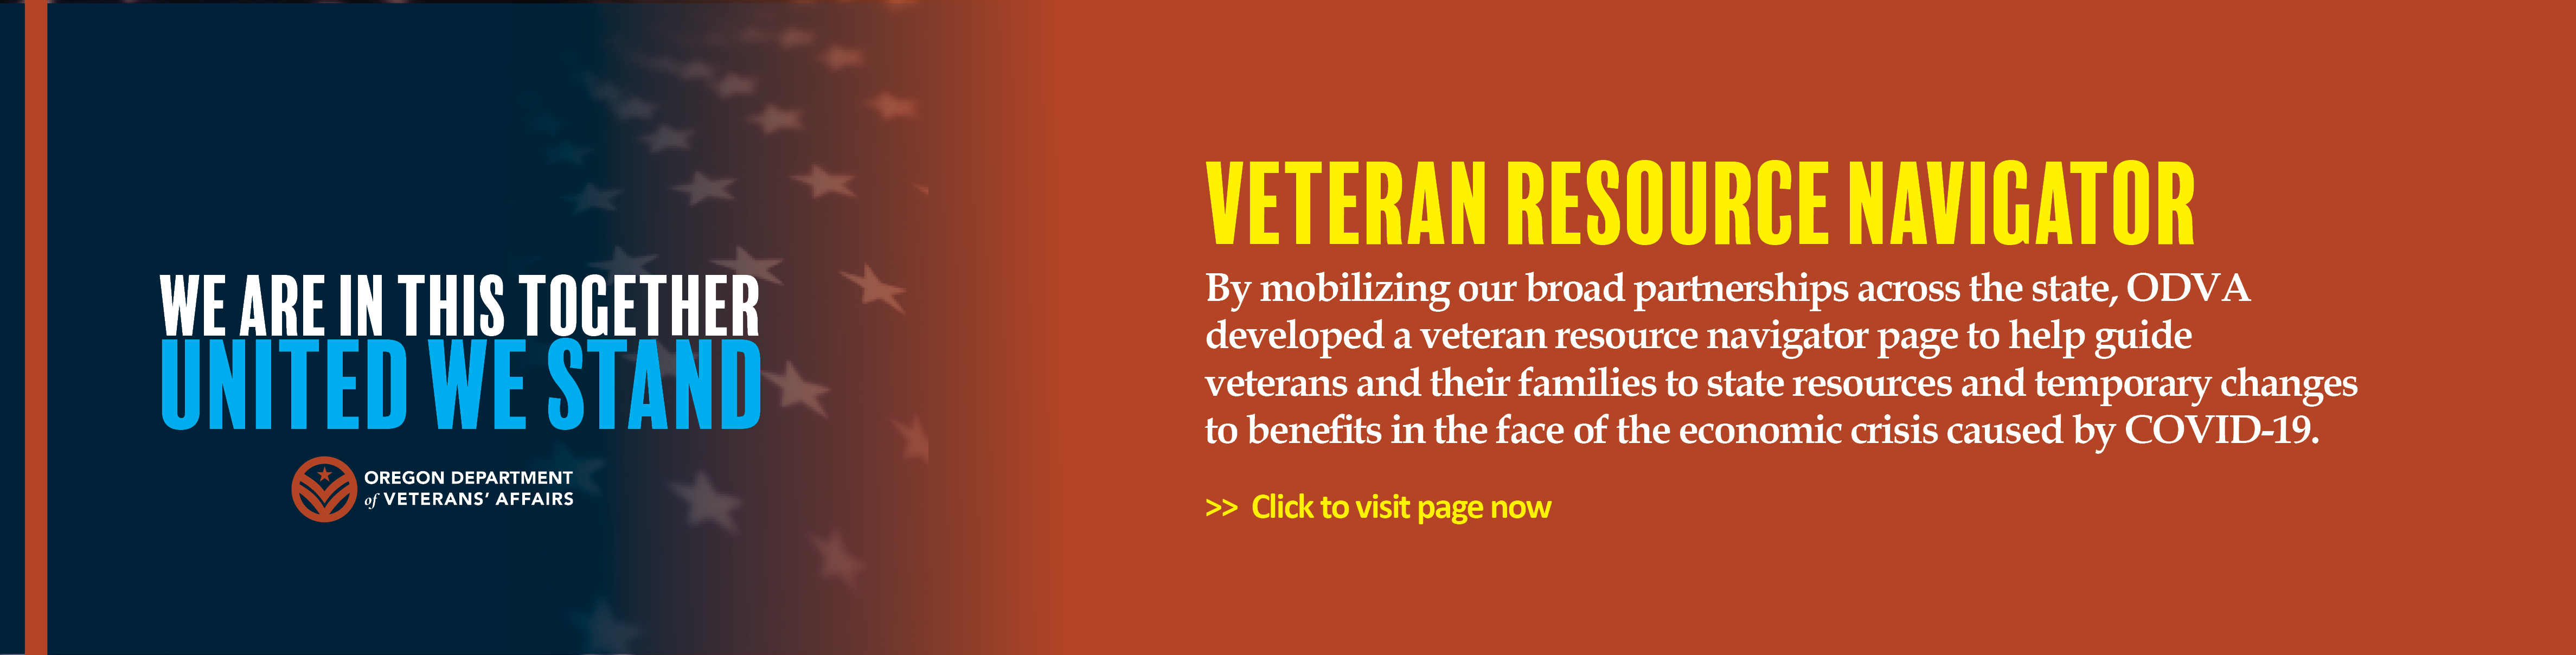 ODVA (Oregon Department of Veterans' Affairs): Veteran Resource Navigator – Daily